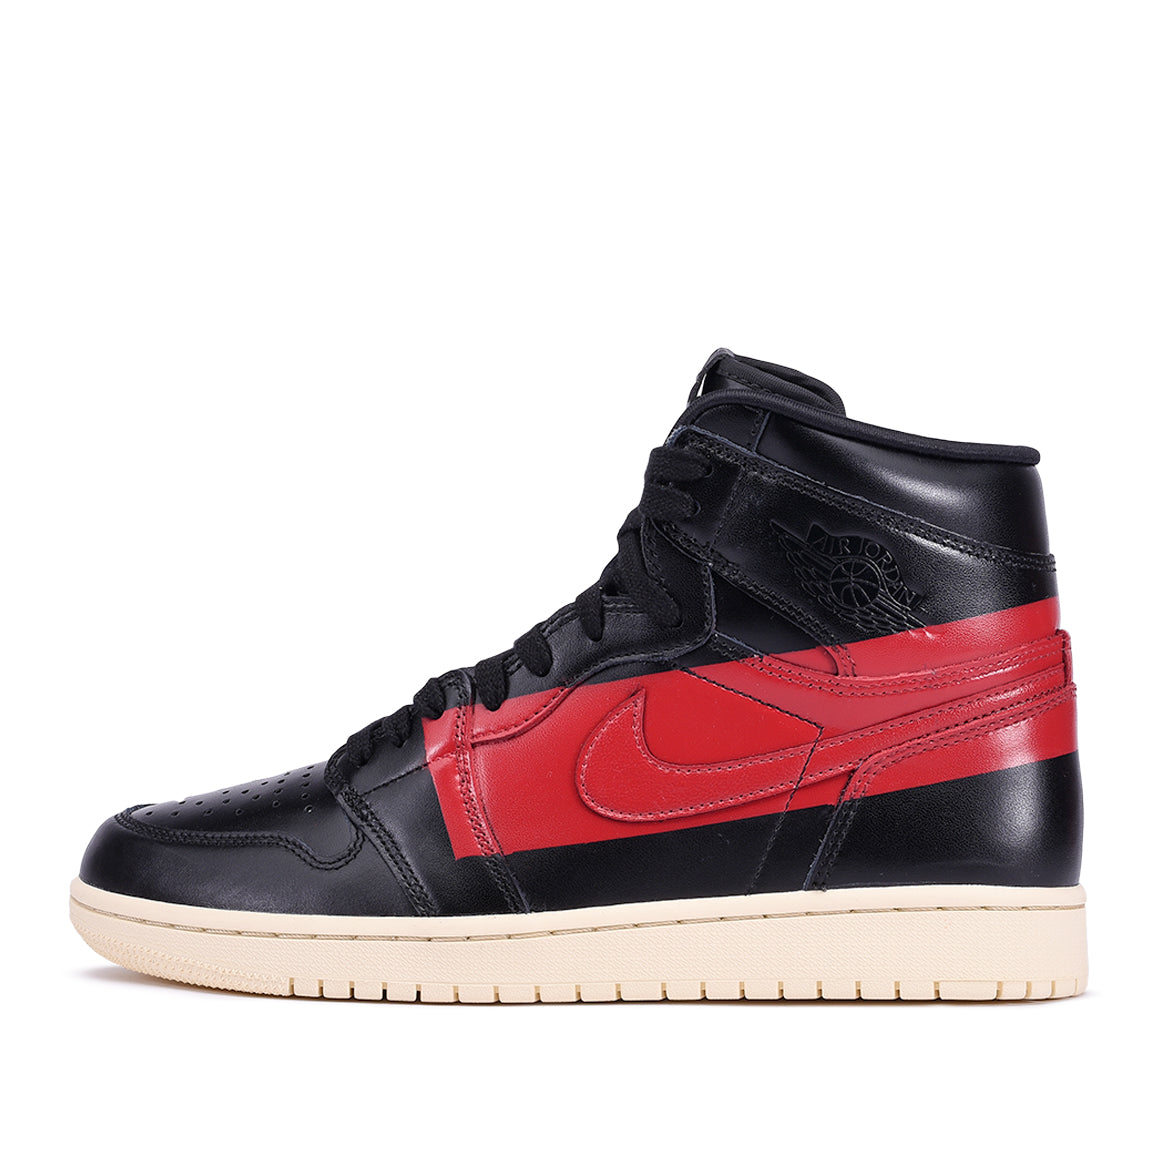 huge selection of c0aa6 1c6c8 AIR JORDAN 1 HIGH OG DEFIANT